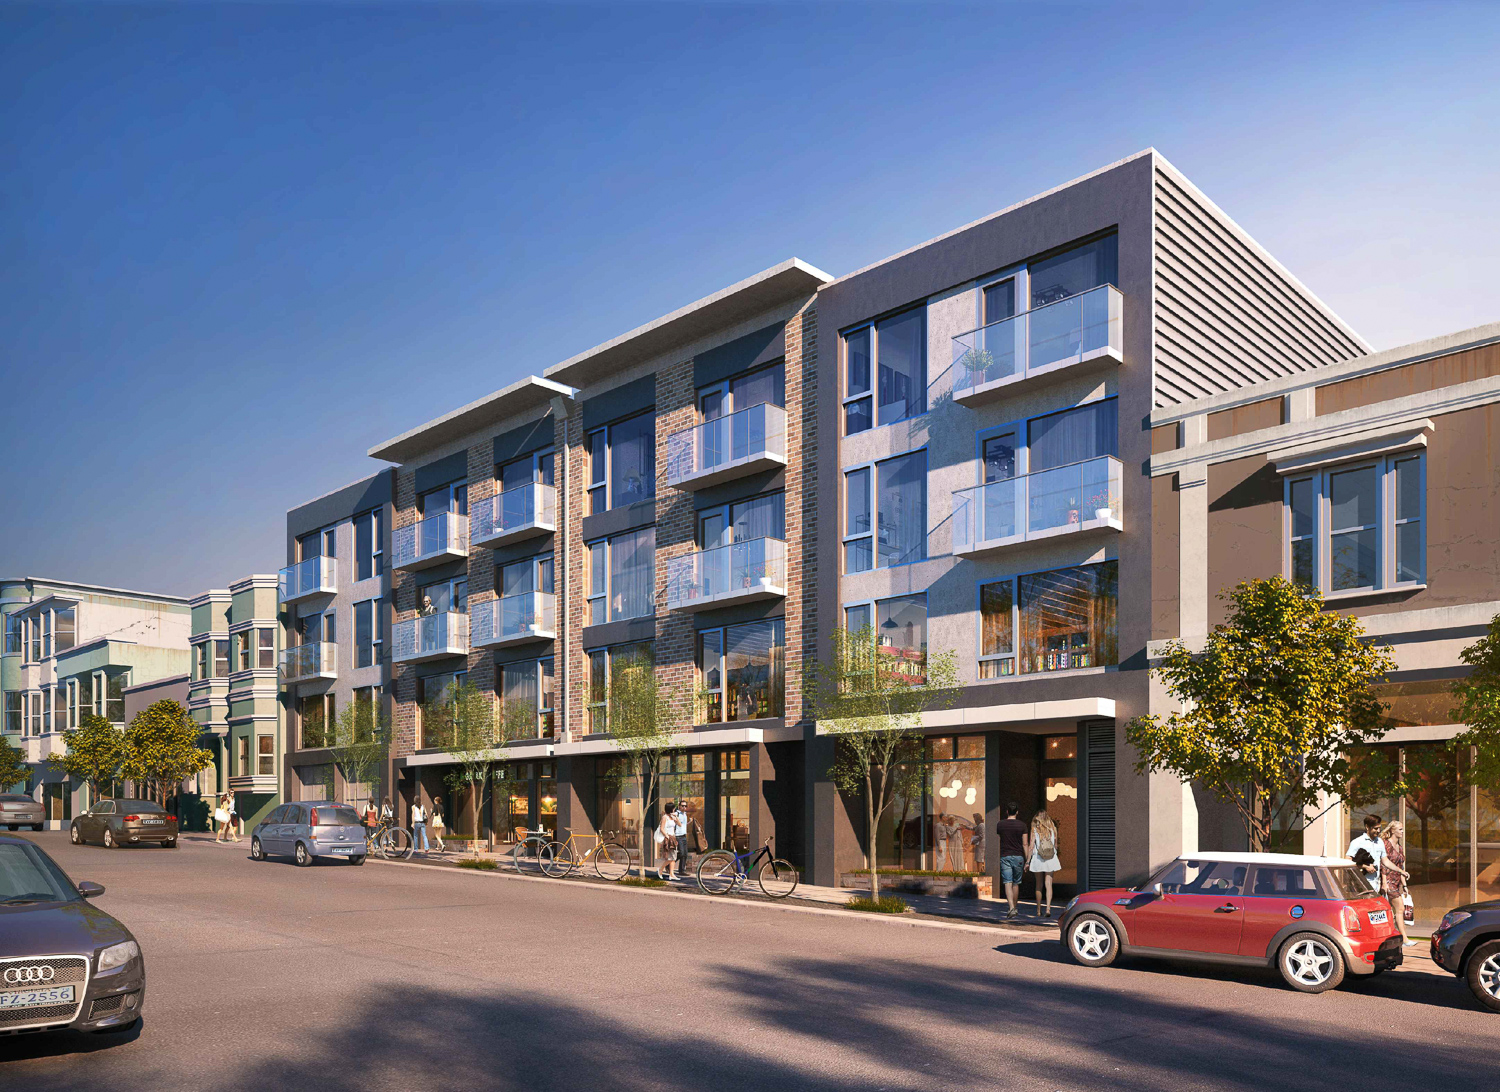 3637-3657 Sacramento Street, rendering by Gary Gee Architects